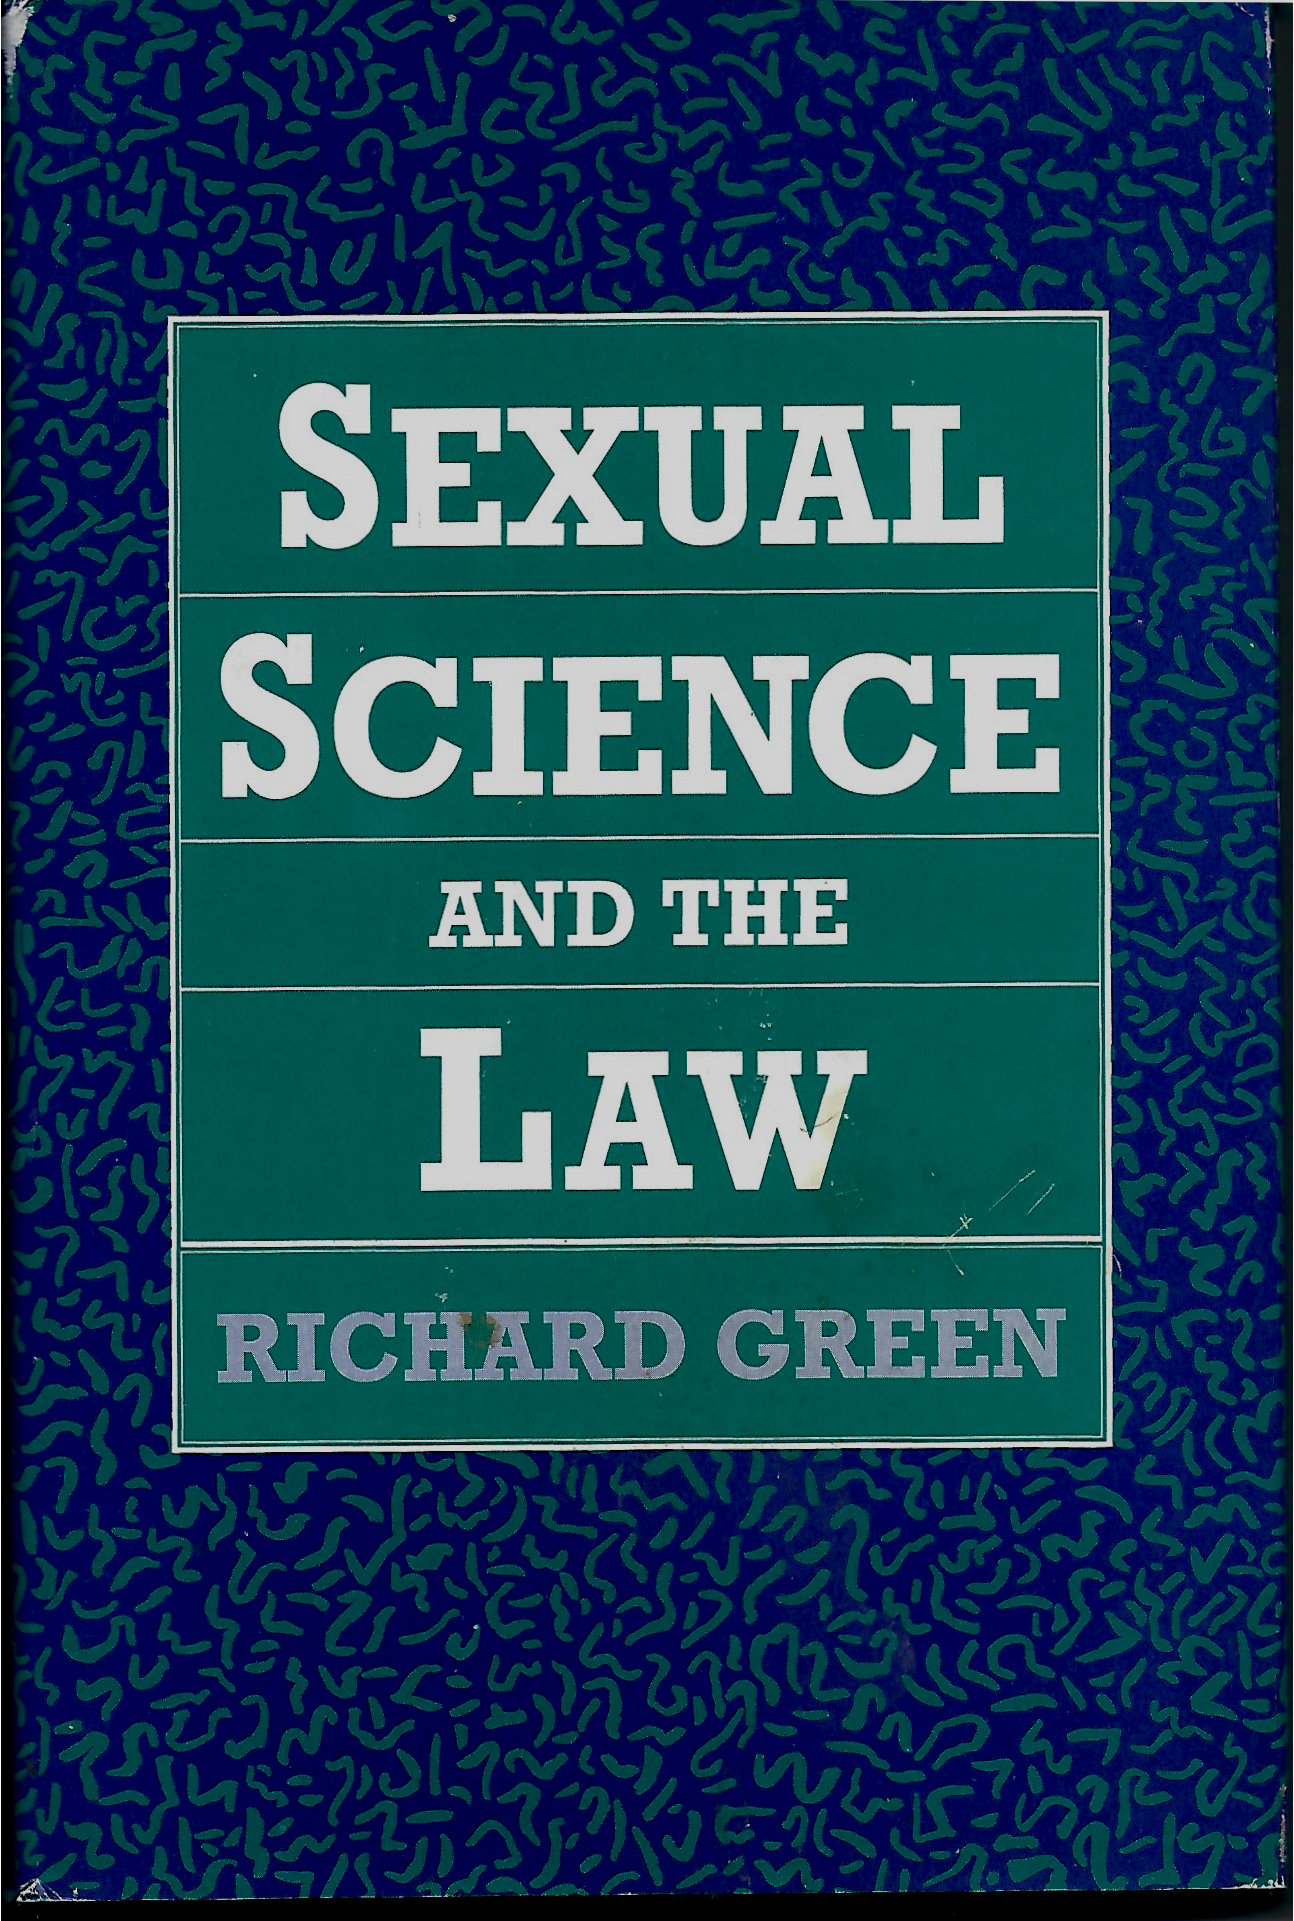 Sexual Science and the Law - Richard Green1992